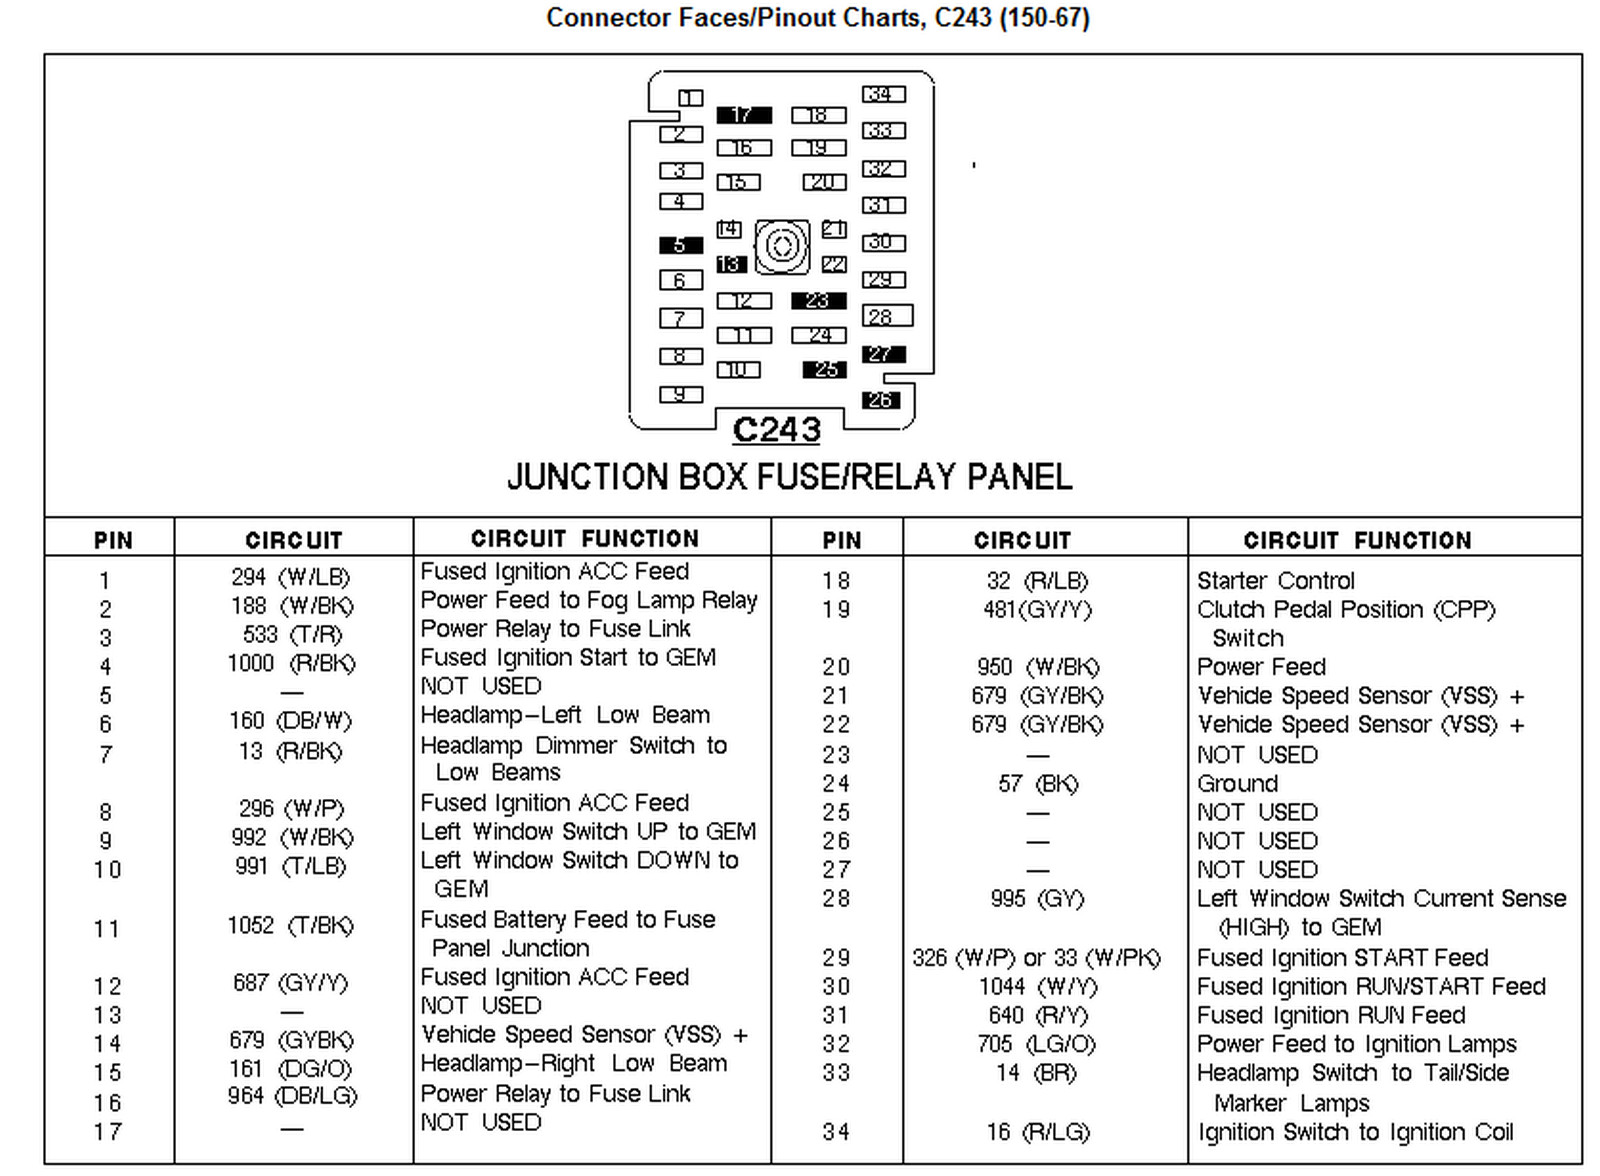 1998 f250 fuse diagram 1998 ford f 150 fuse box 4 6 1998 wiring diagrams instruction 98 ford expedition fuse box diagram at bayanpartner.co